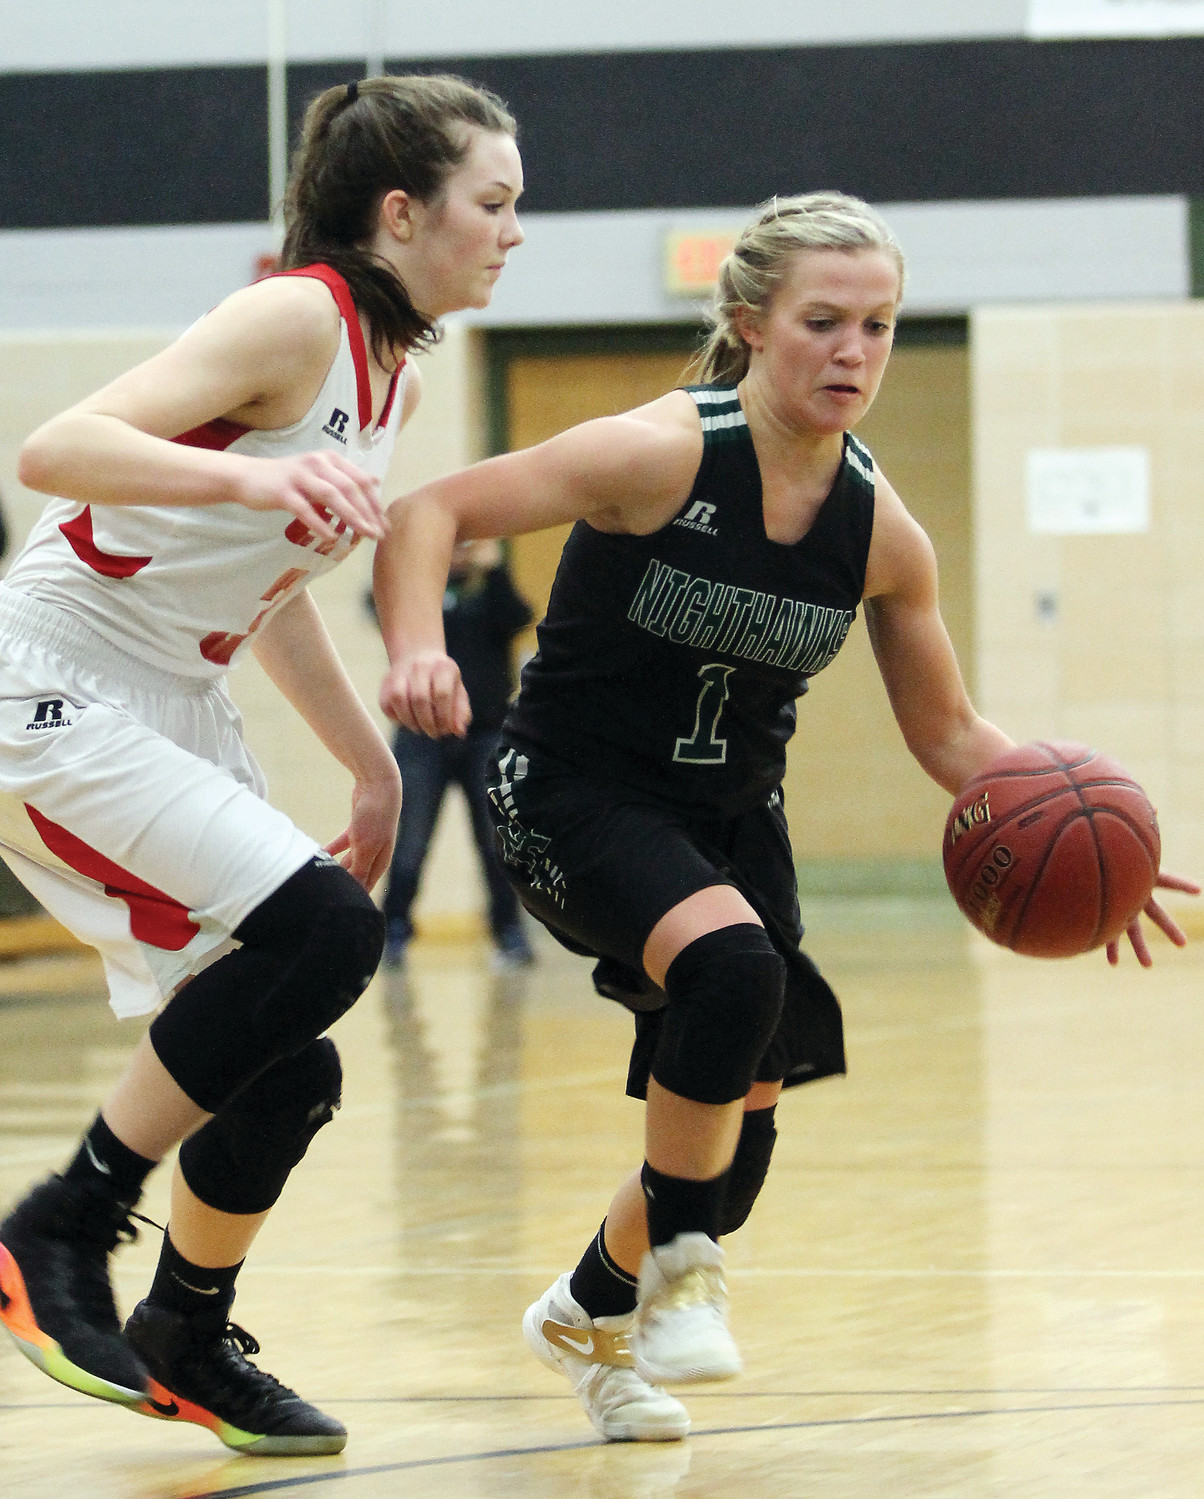 Northeast Range's junior guard Shayler Lislegard advances the ball under pressure from Ely's Brielle Kallberg.